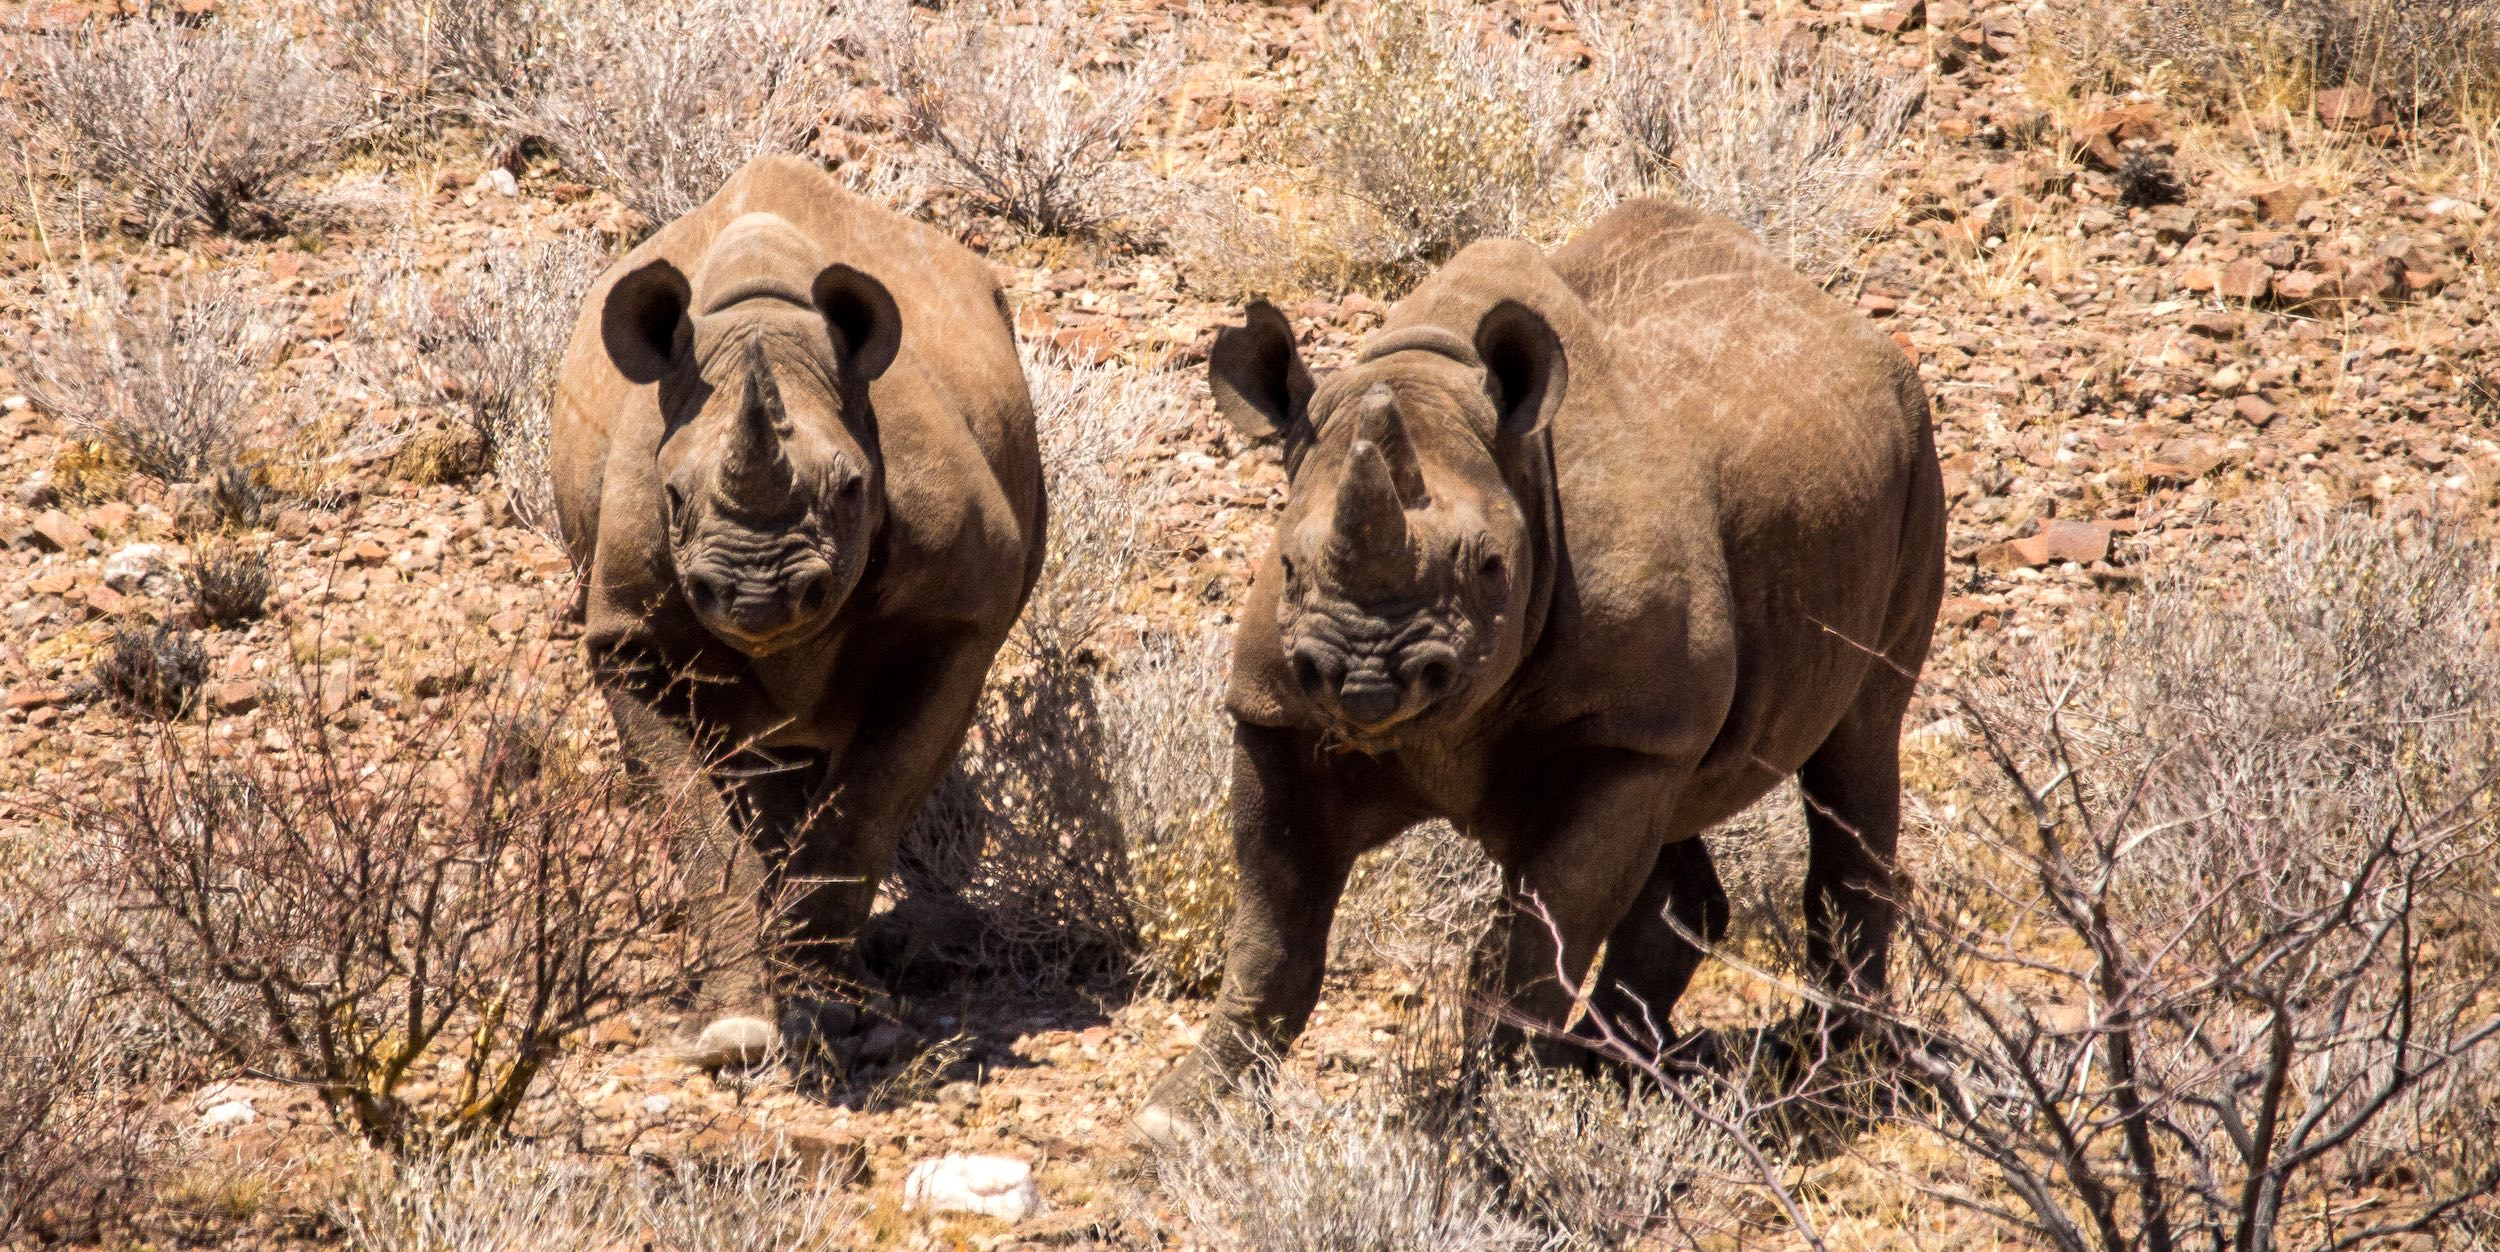 Two black rhinos amongst the rocks and scrub of north-western Namibia.